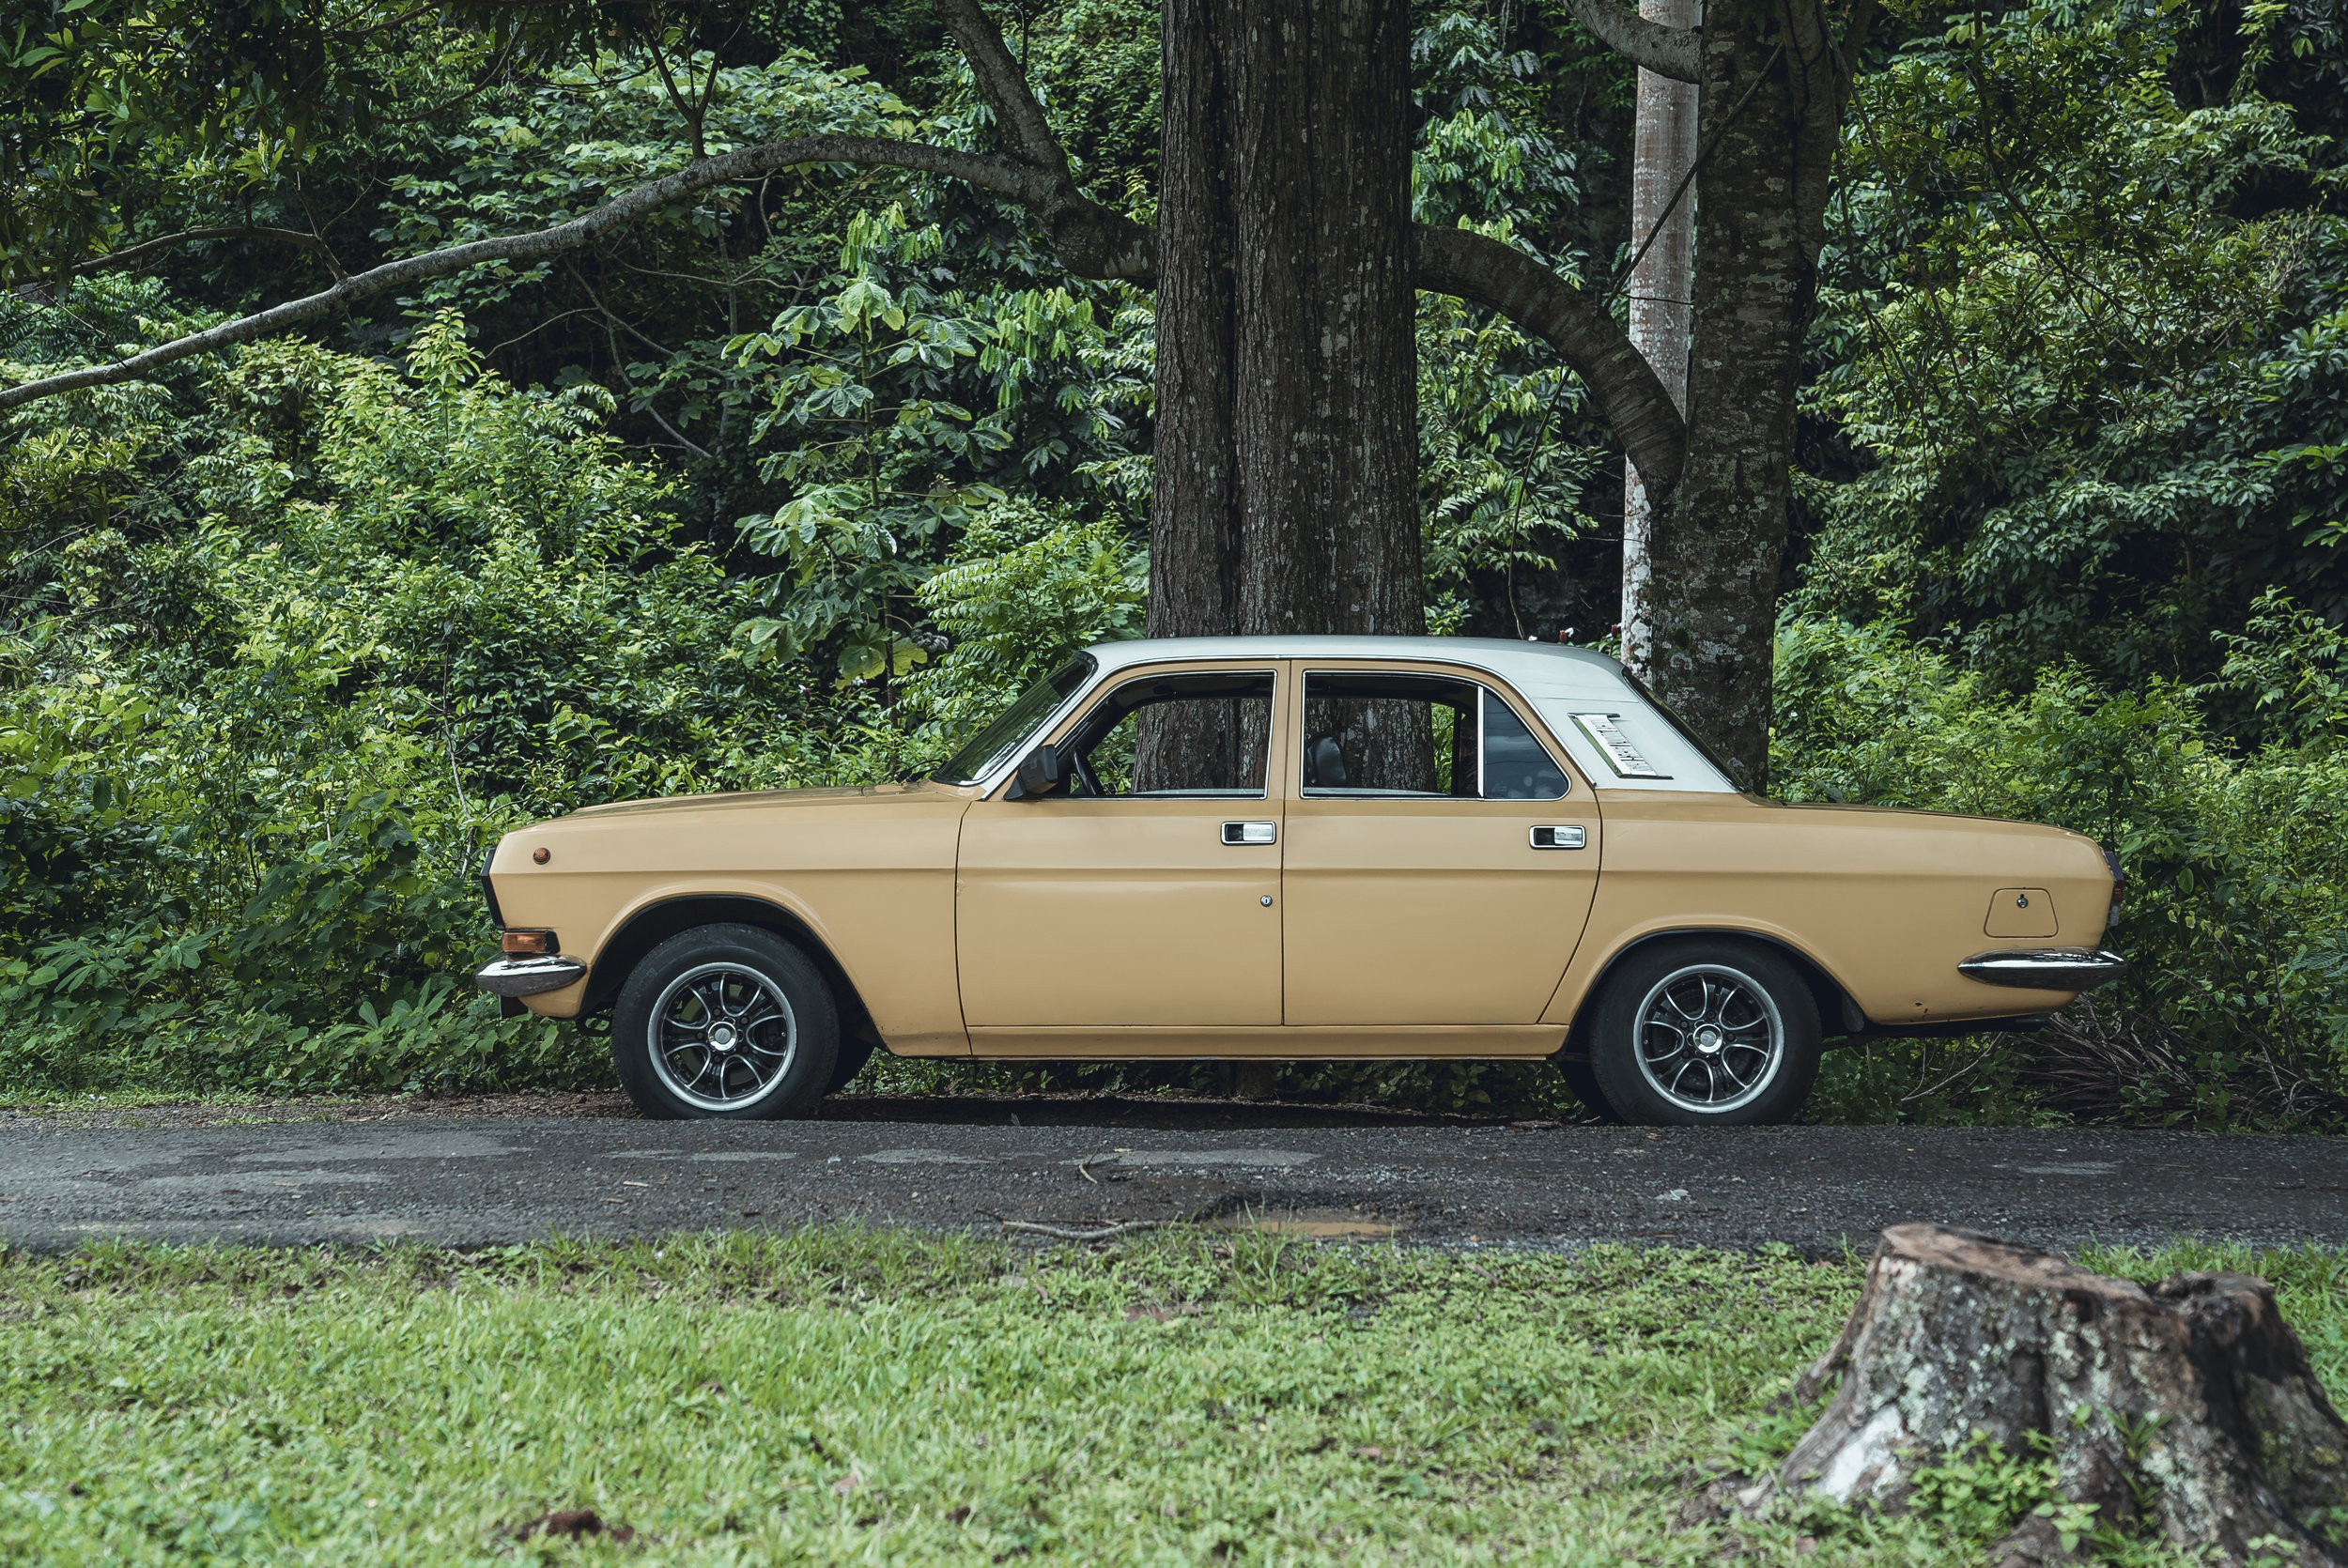 My son and I rode in the back seat of this vehicle on a two hour journey to the farmlands of Cuba. It was a long ride with no air conditioner that included one stop at a small rest area.